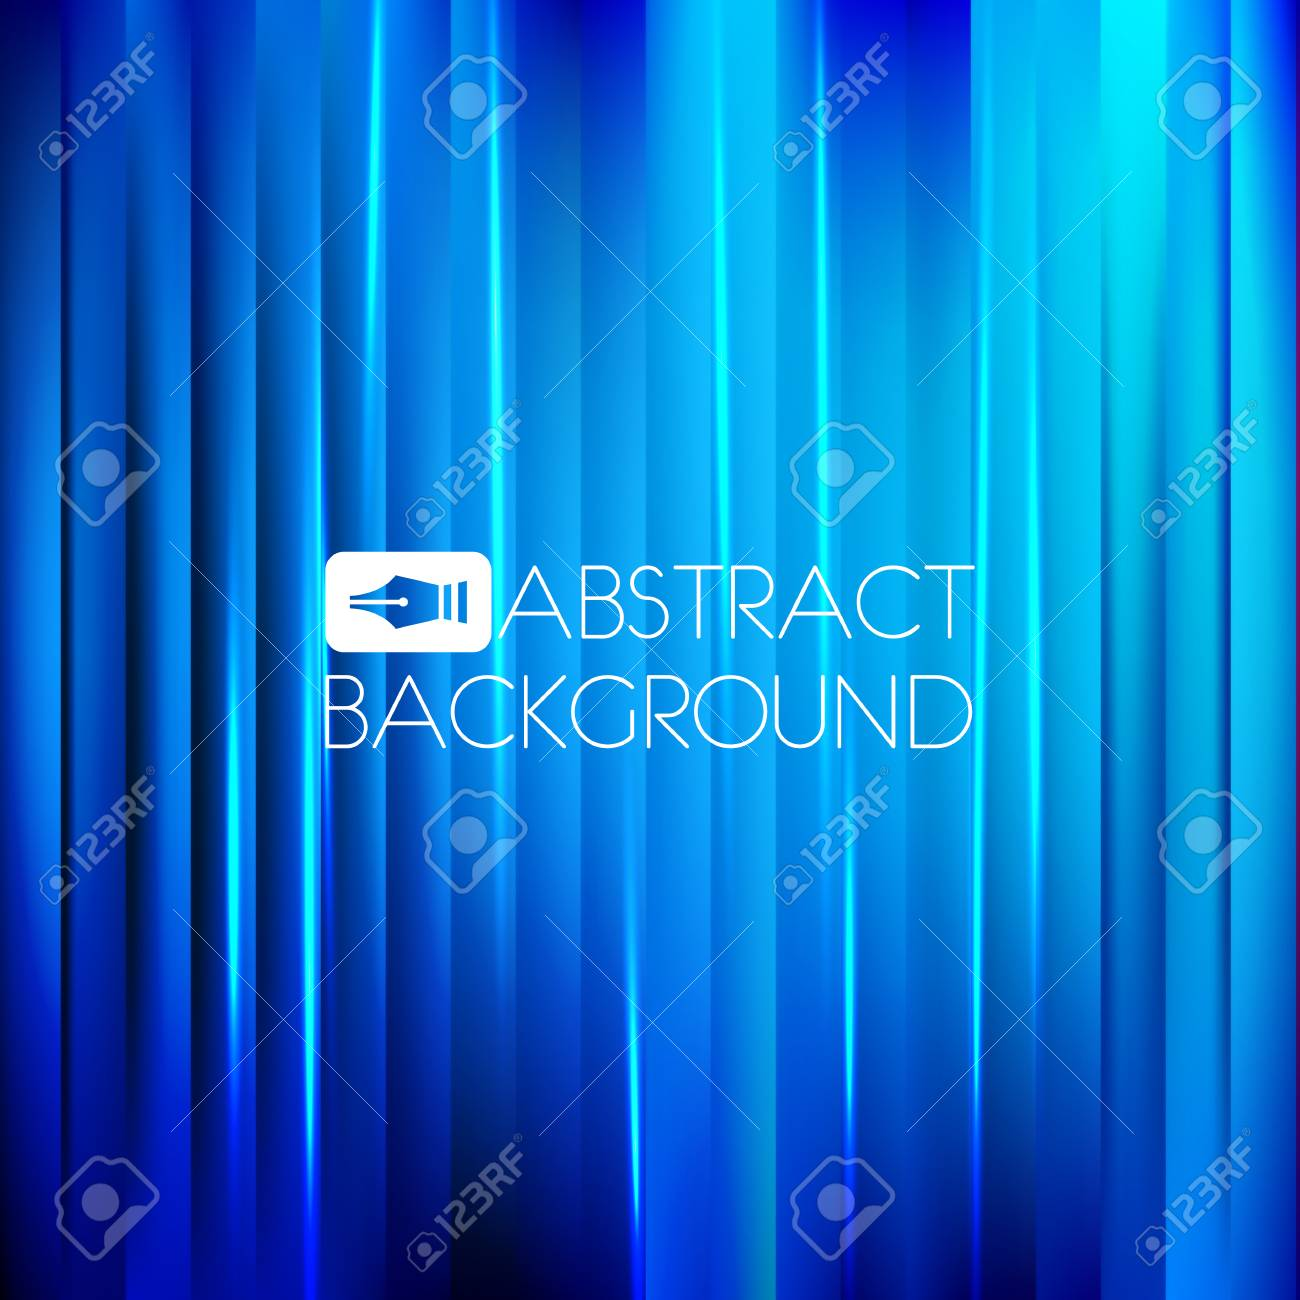 Abstract blue background - 38965724